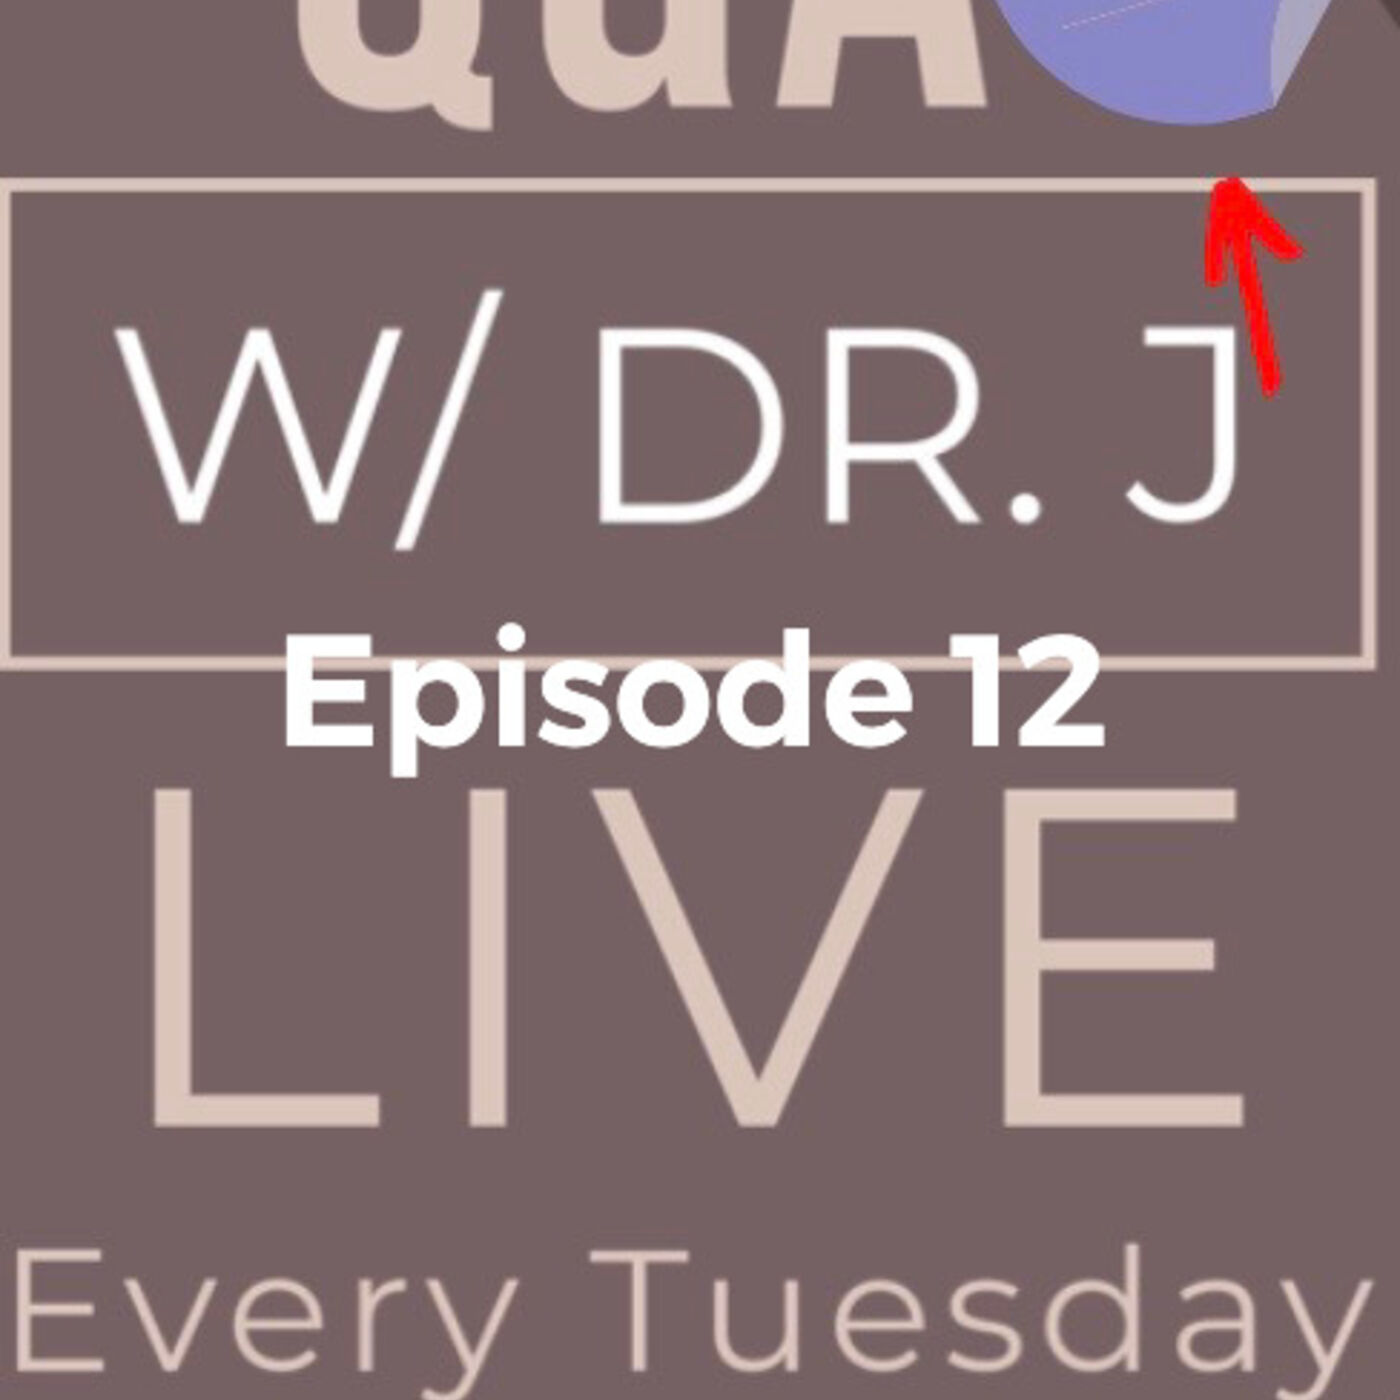 EP 12 Q&A w/ Dr J - Men and Women Hormone Therapy - Hormone Therapy in texas